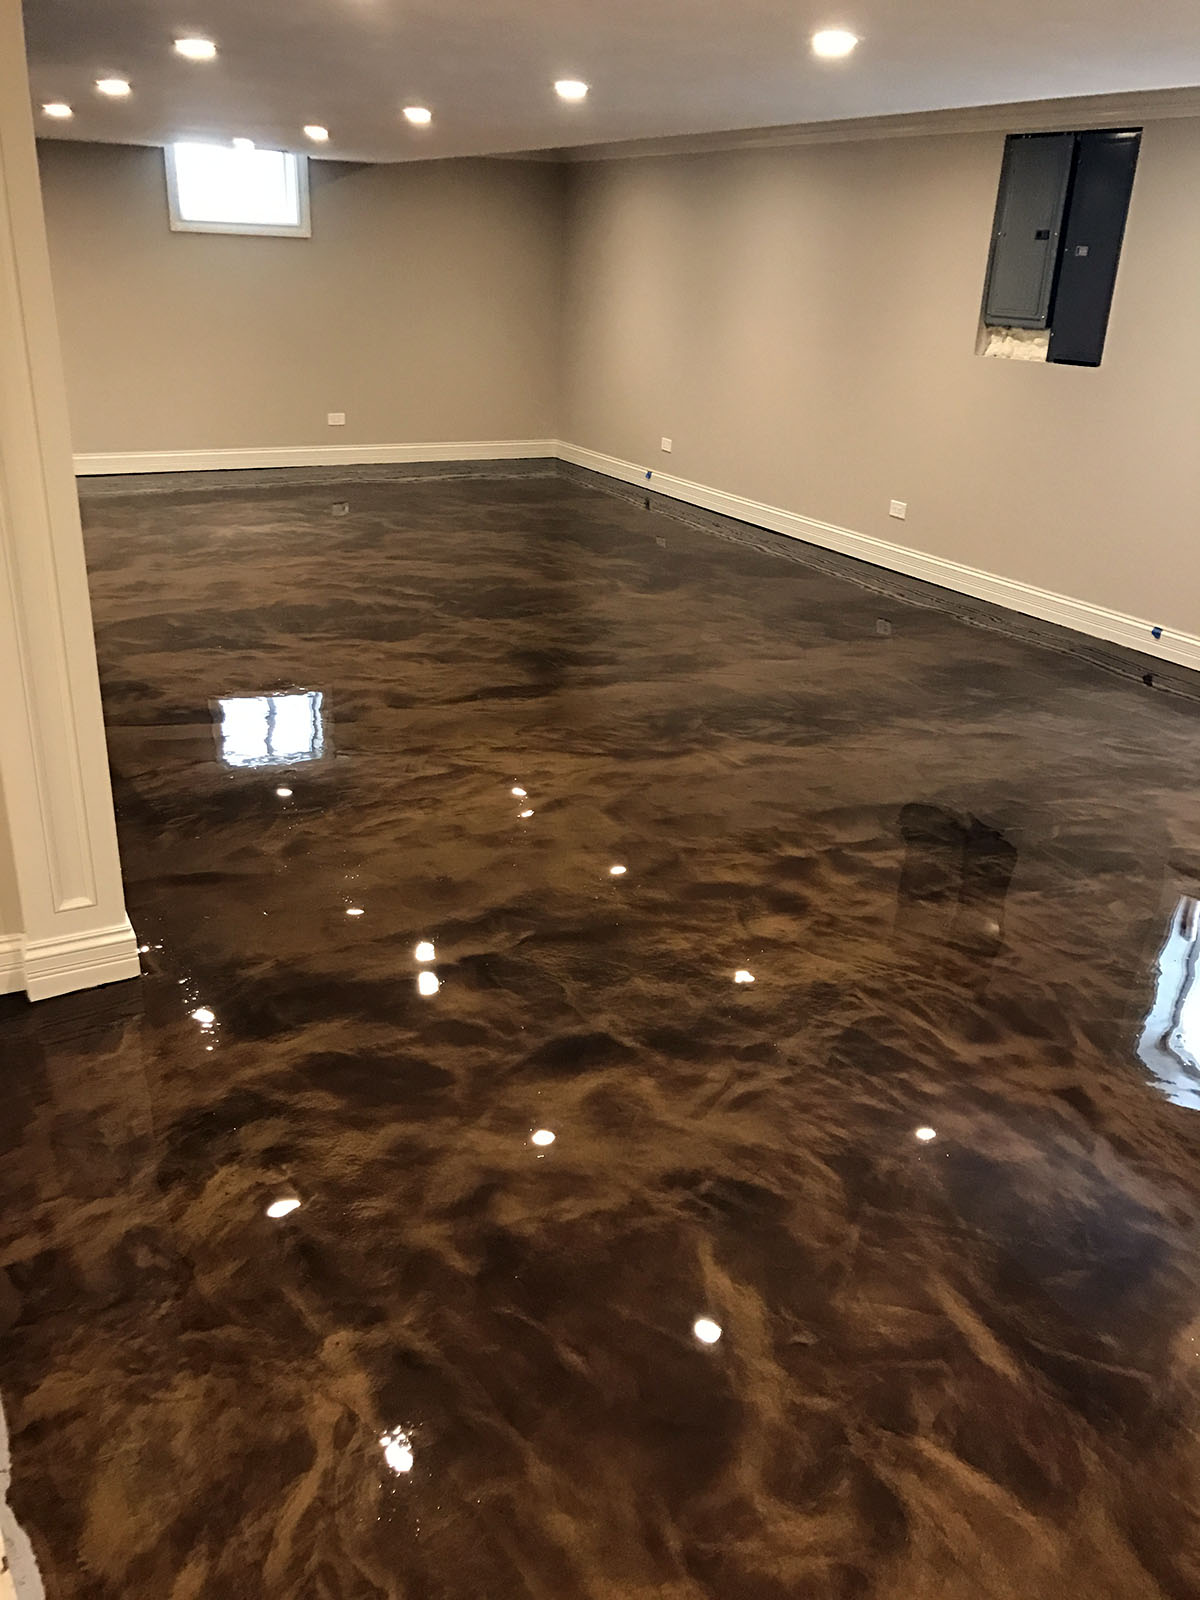 we sure sterling tile will grout sealing all make bathroom beach our floor check cleaning living of out do professional and epoxy services gallery room palm your fl flooring coatings